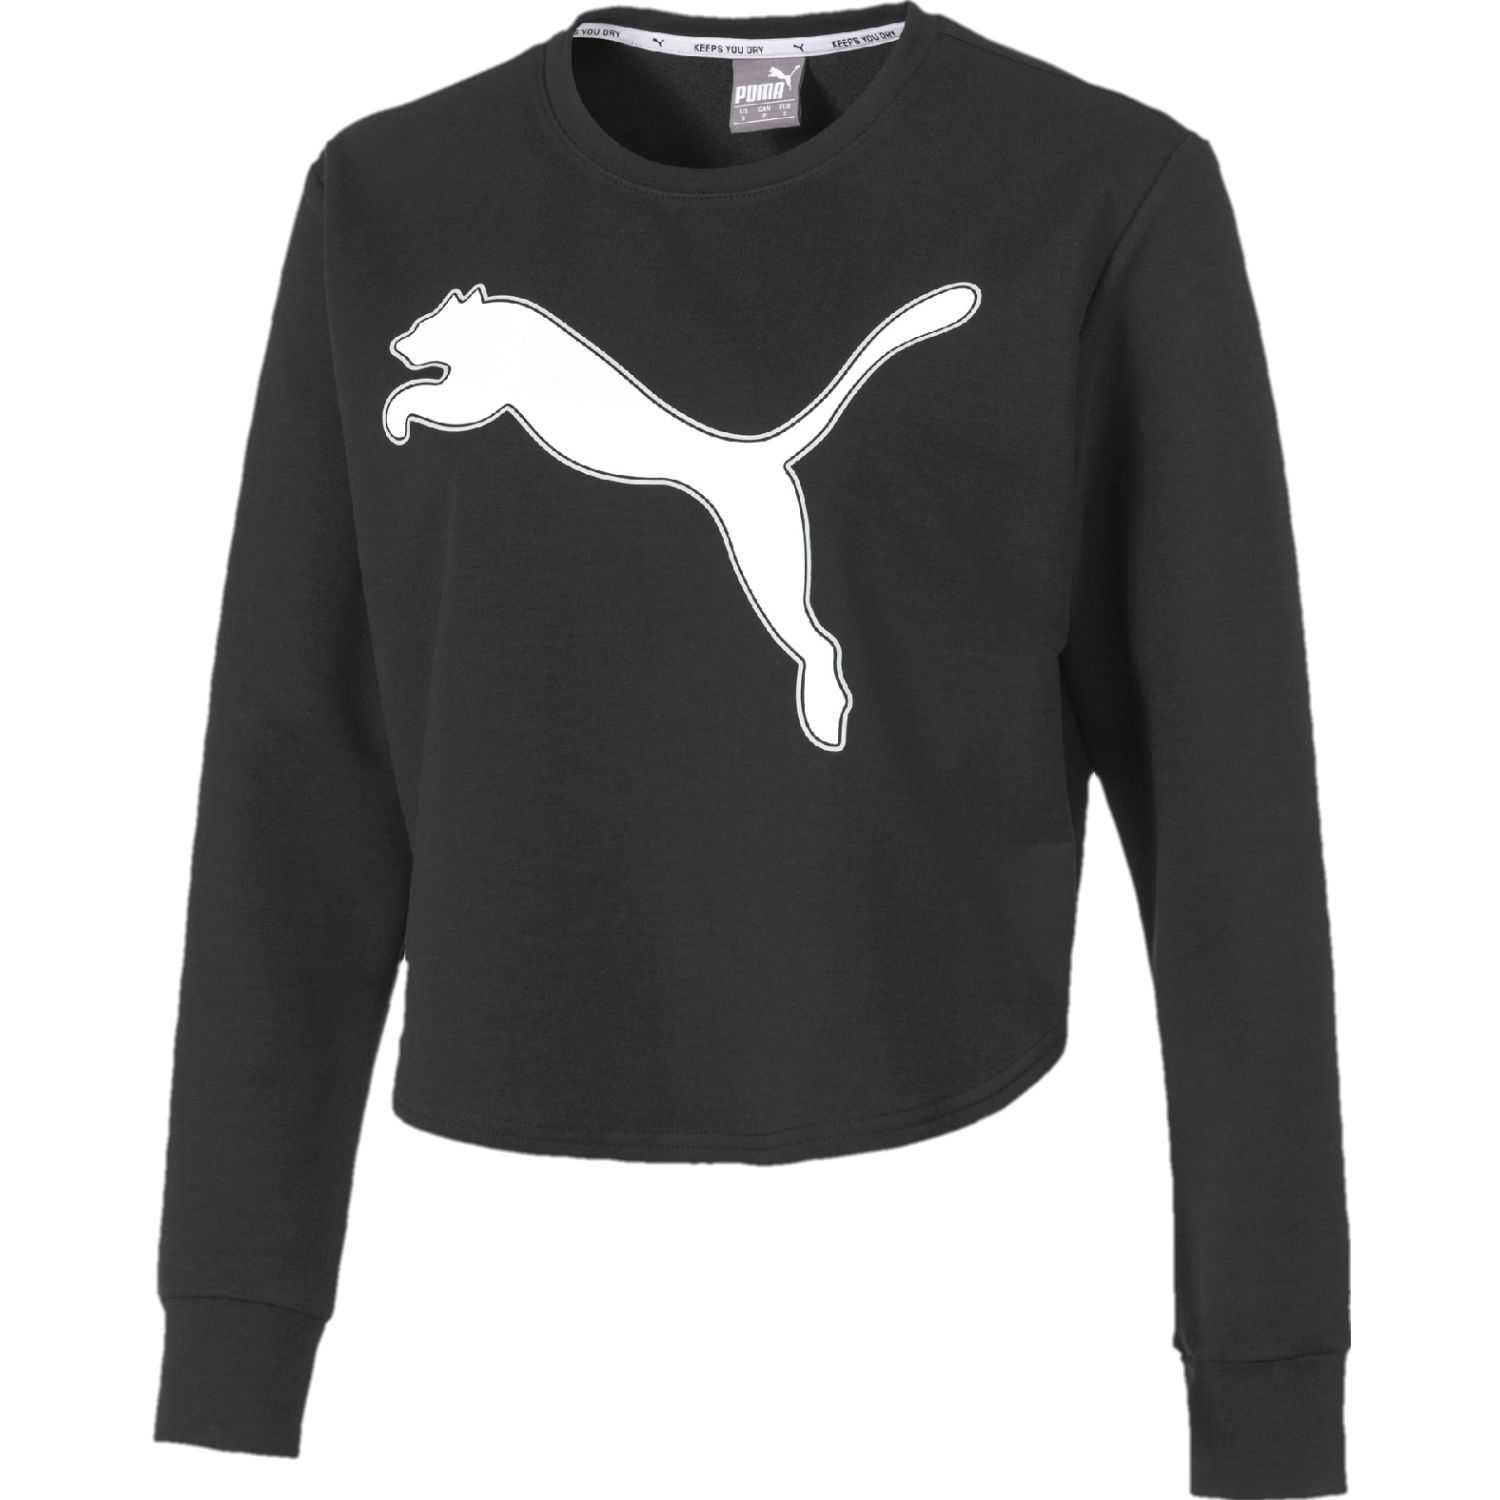 Puma modern sports crew sweat Negro / blanco Hoodies Deportivos